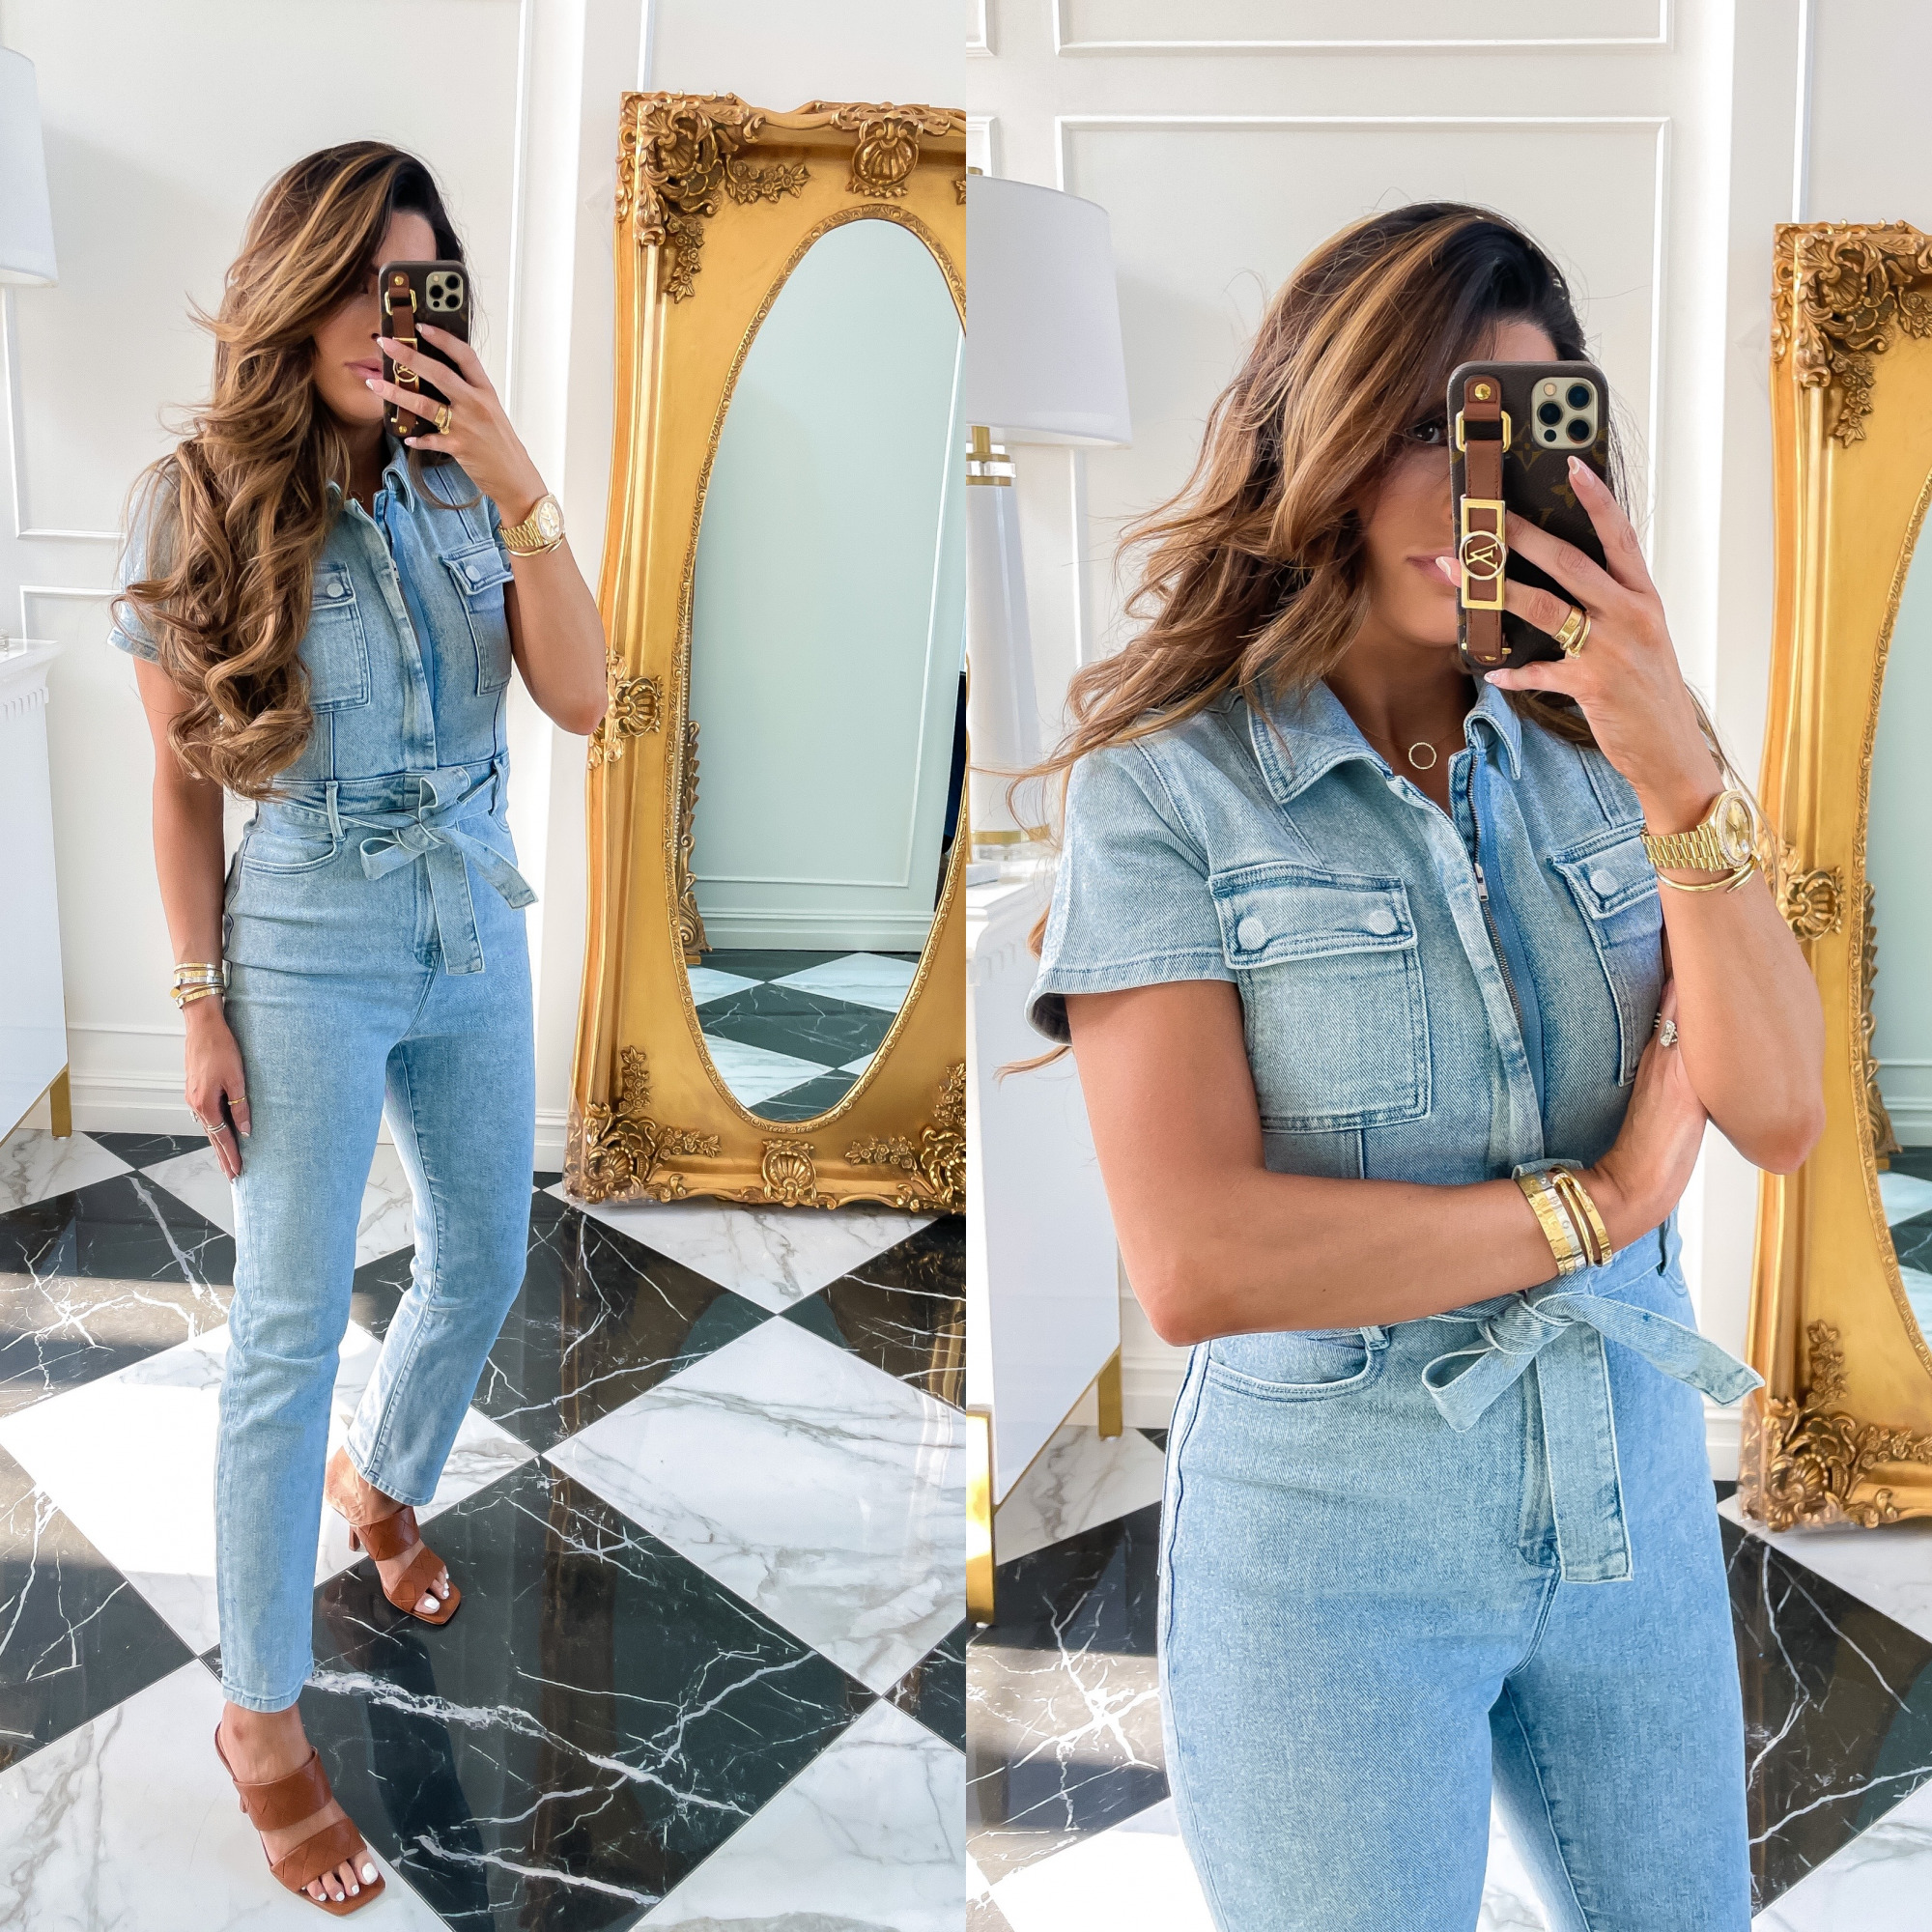 Nordstrom Anniversary Sale 2021 Picks, NSALE 2021 picks must haves, Nordstrom sale 2021 Good american jumpsuit , Emily gemma | Nordstrom Anniversary Sale by popular US fashion blog, The Sweetest Thing: image of Emily Gemma wearing a denim jumpsuit with brown heel slide sandals.